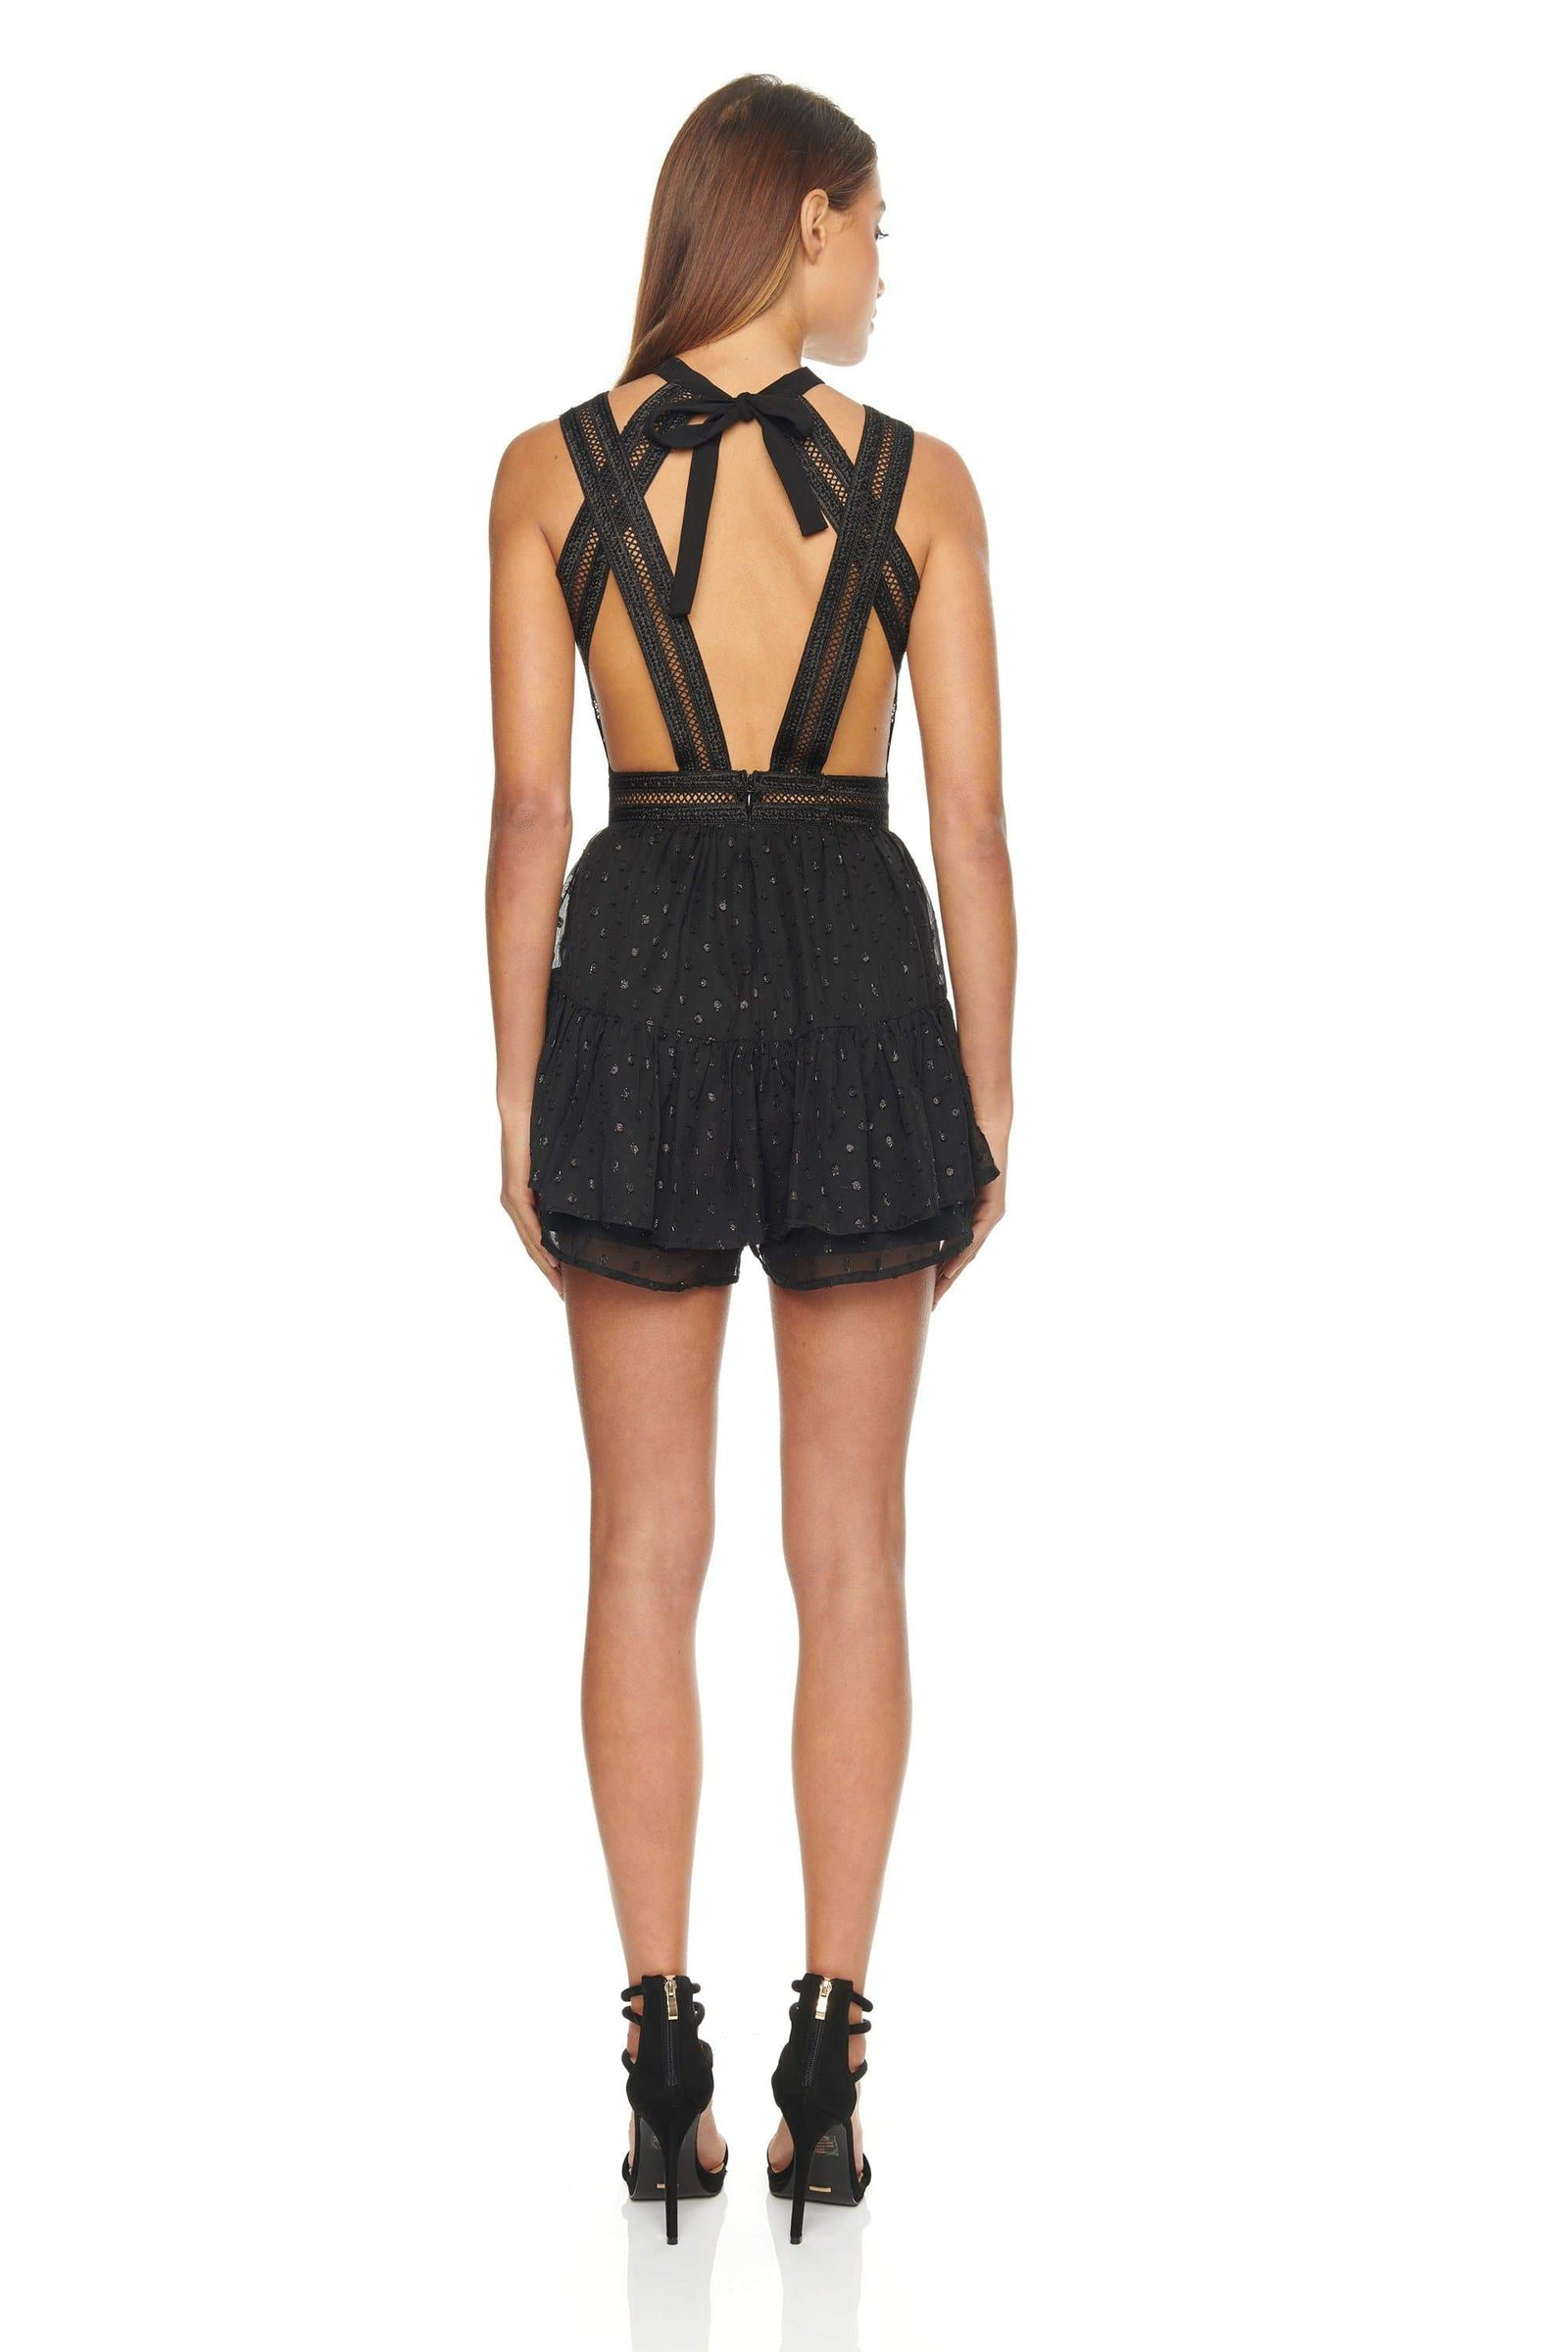 HARLOW PLAYSUIT - ELIYA THE LABEL